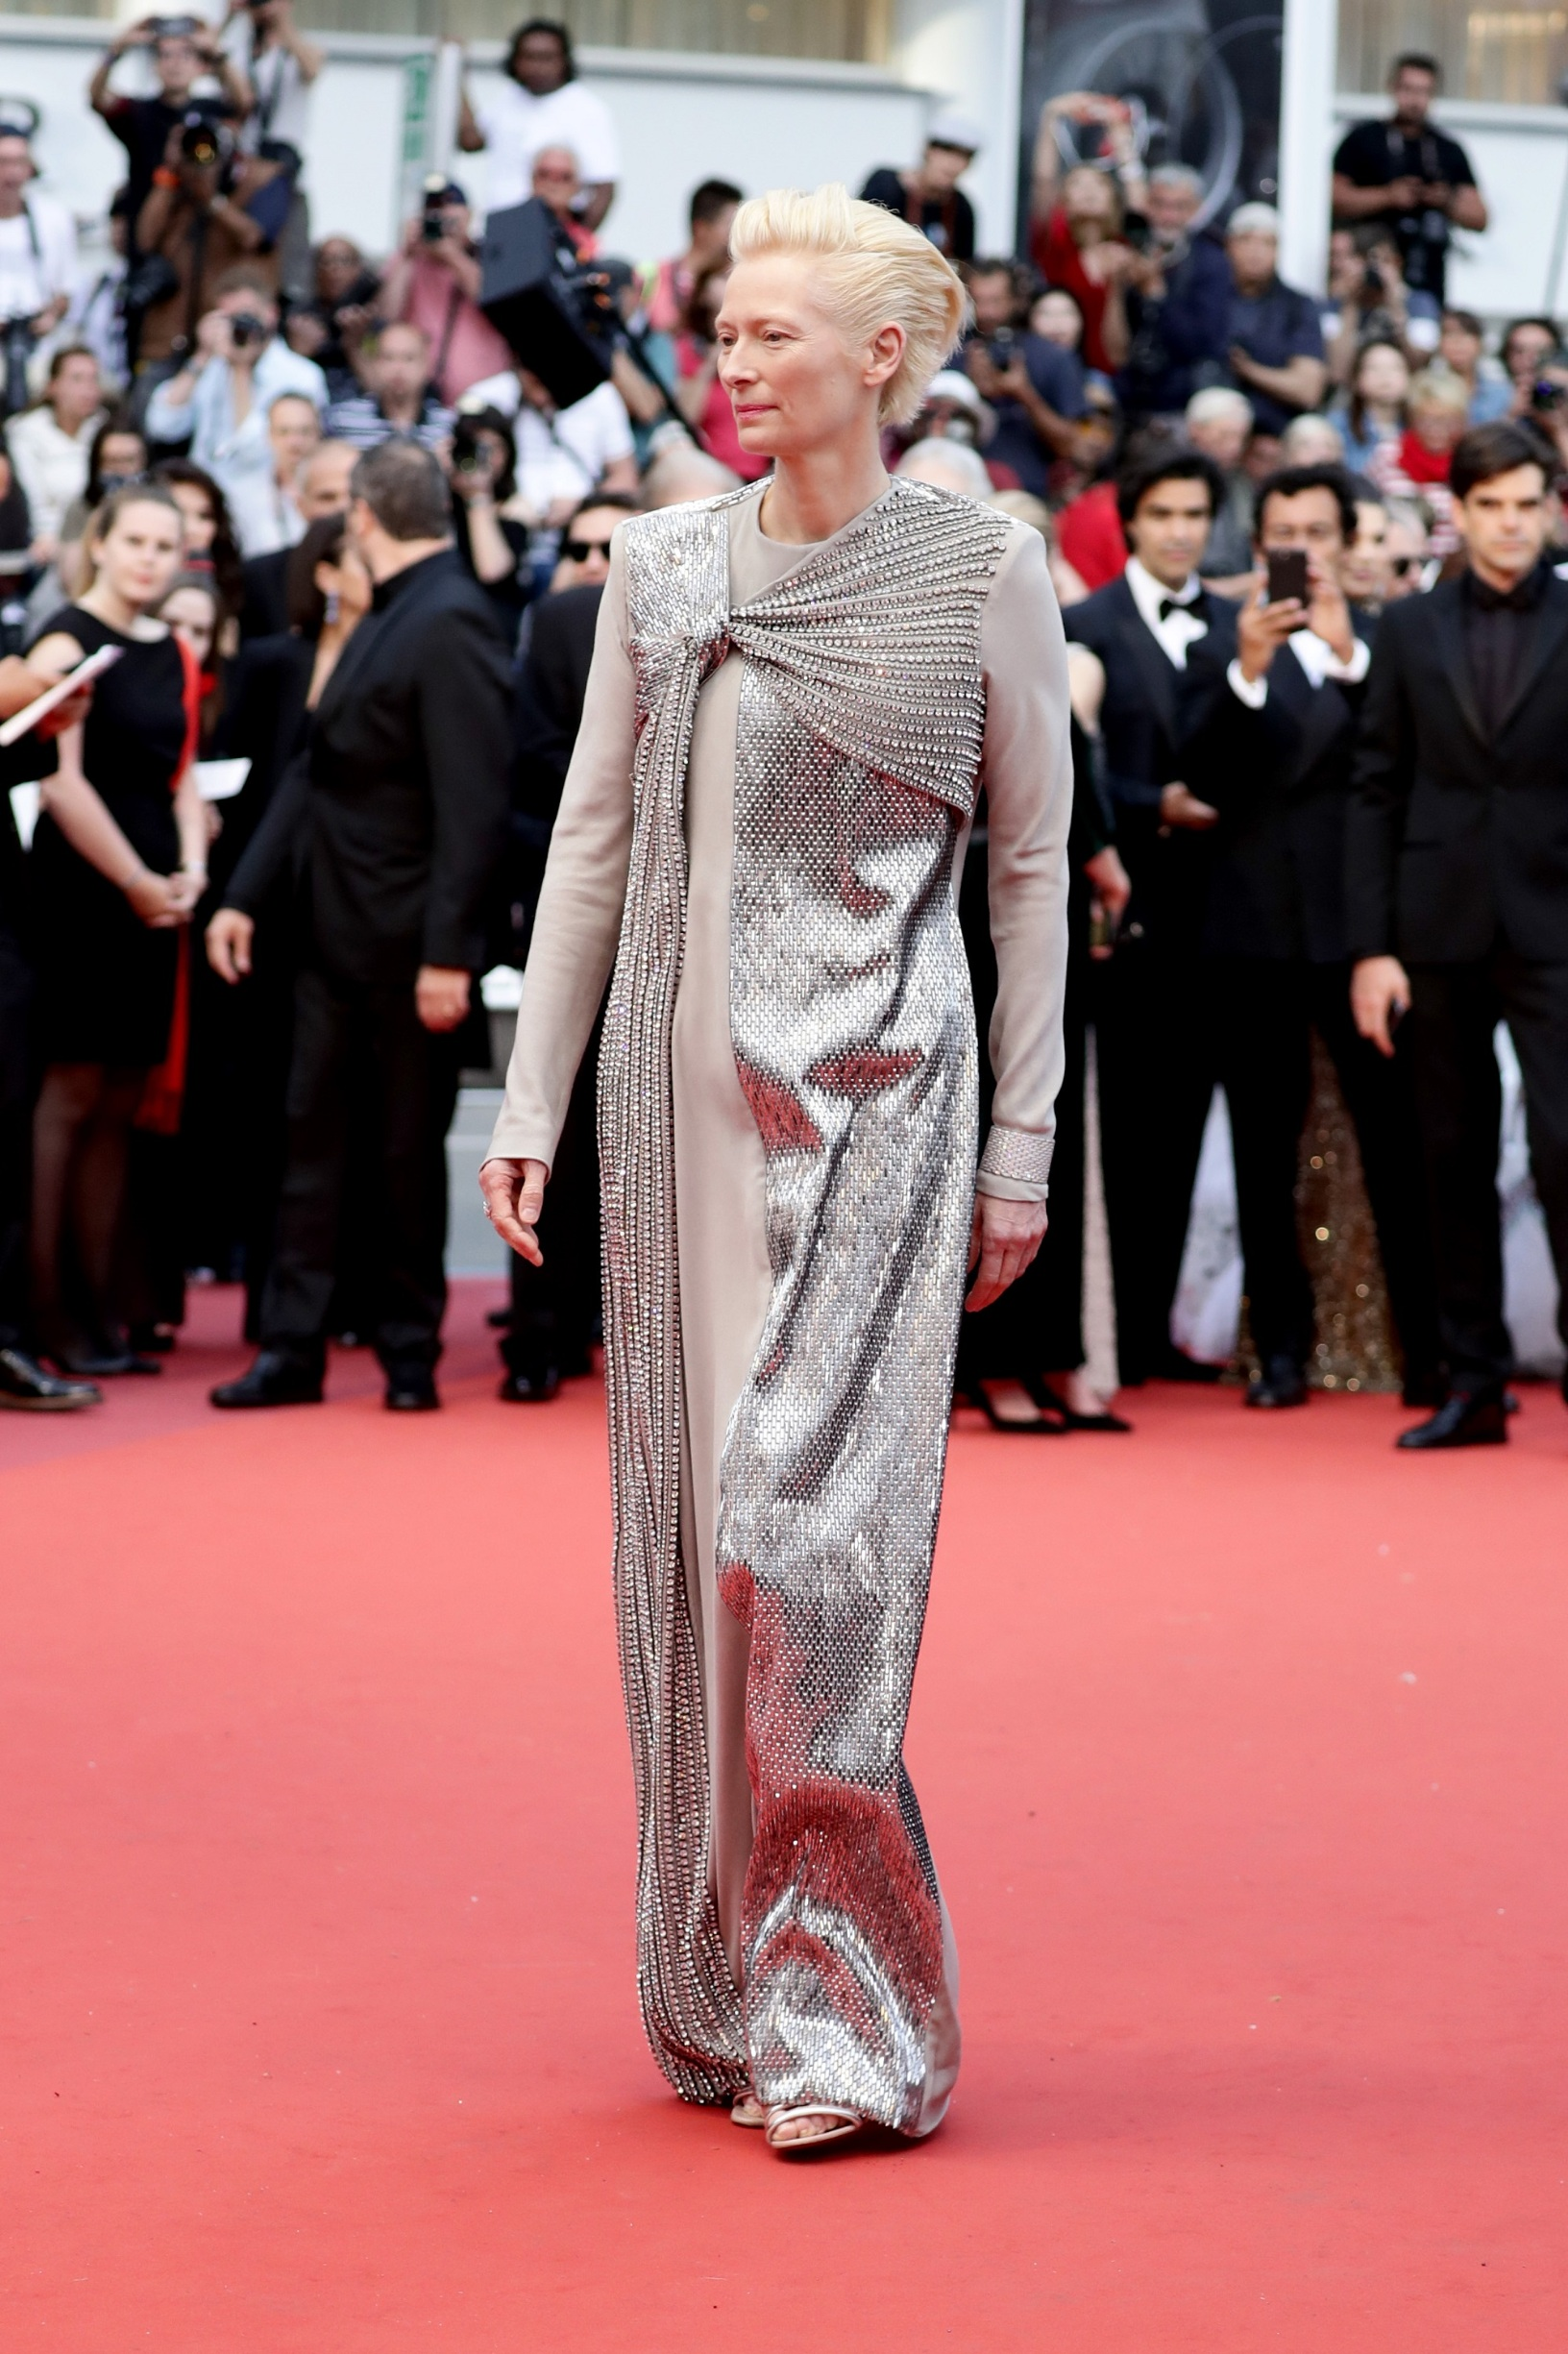 CANNES, FRANCE - MAY 14: Tilda Swintonattends the opening ceremony and screening of